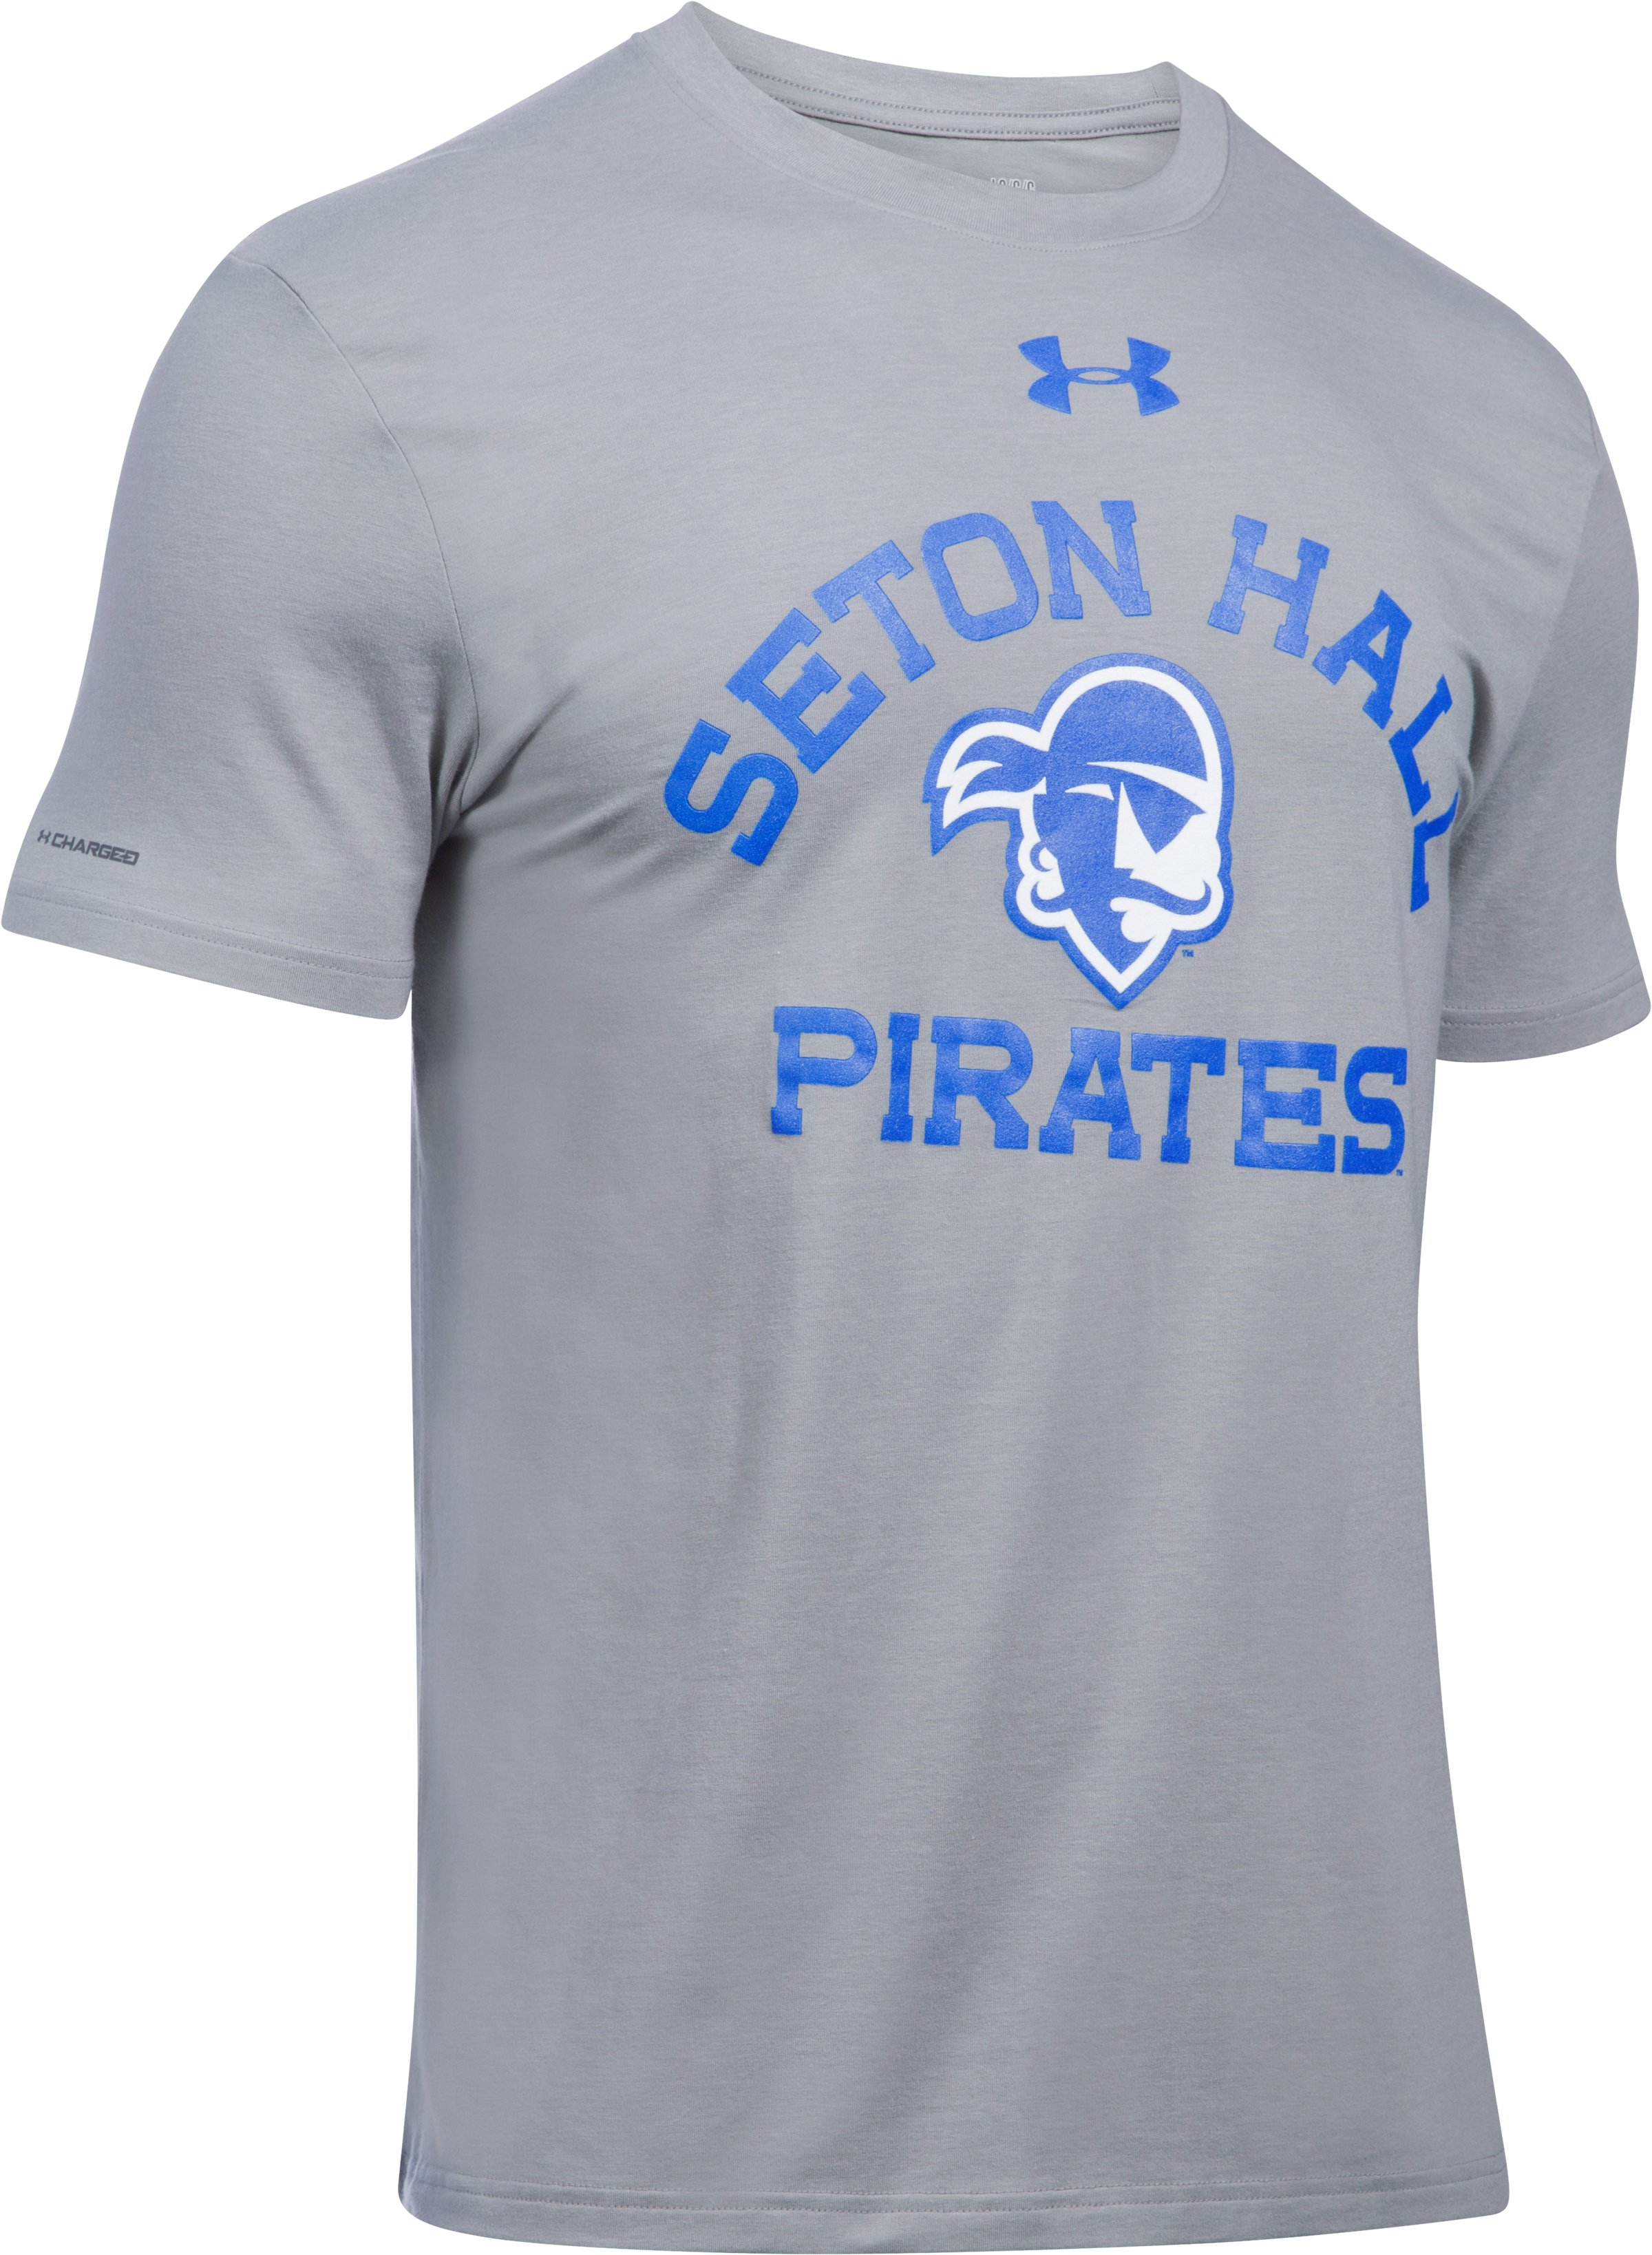 Men's Seton Hall Charged Cotton® T-Shirt, True Gray Heather, undefined